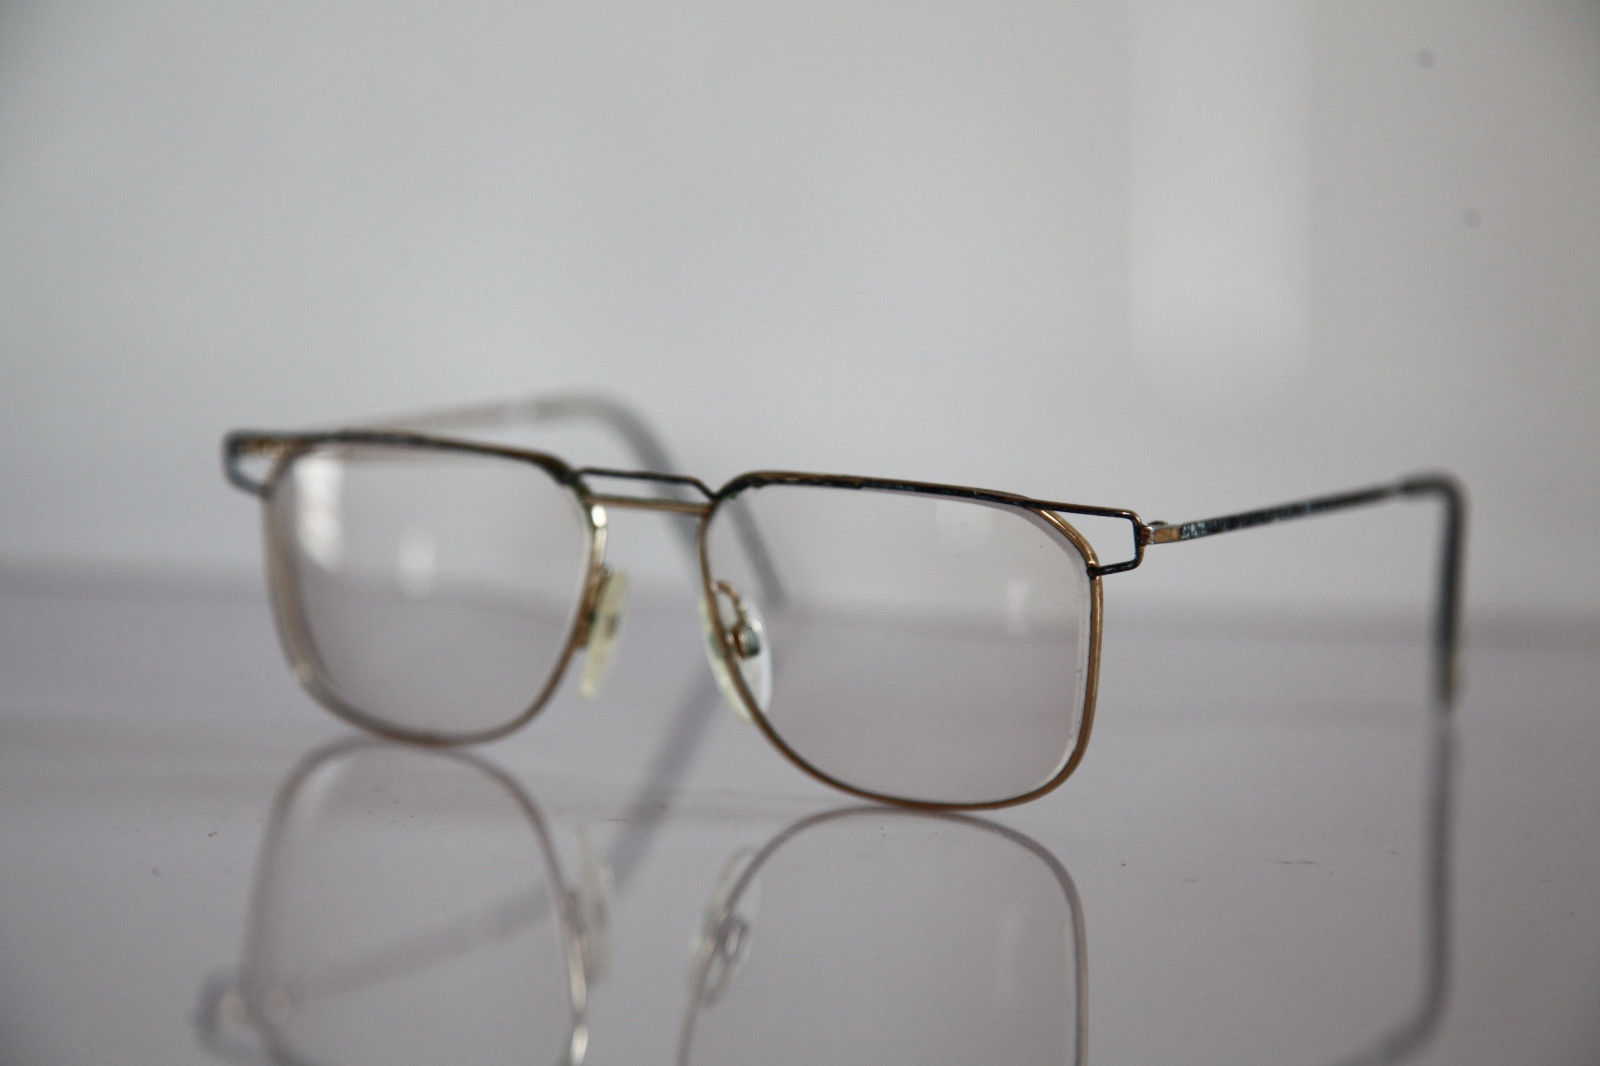 Vintage NEOSTYLE  Eyewear, Gold Frame,  Crystal RX-Able Prescription. Germany